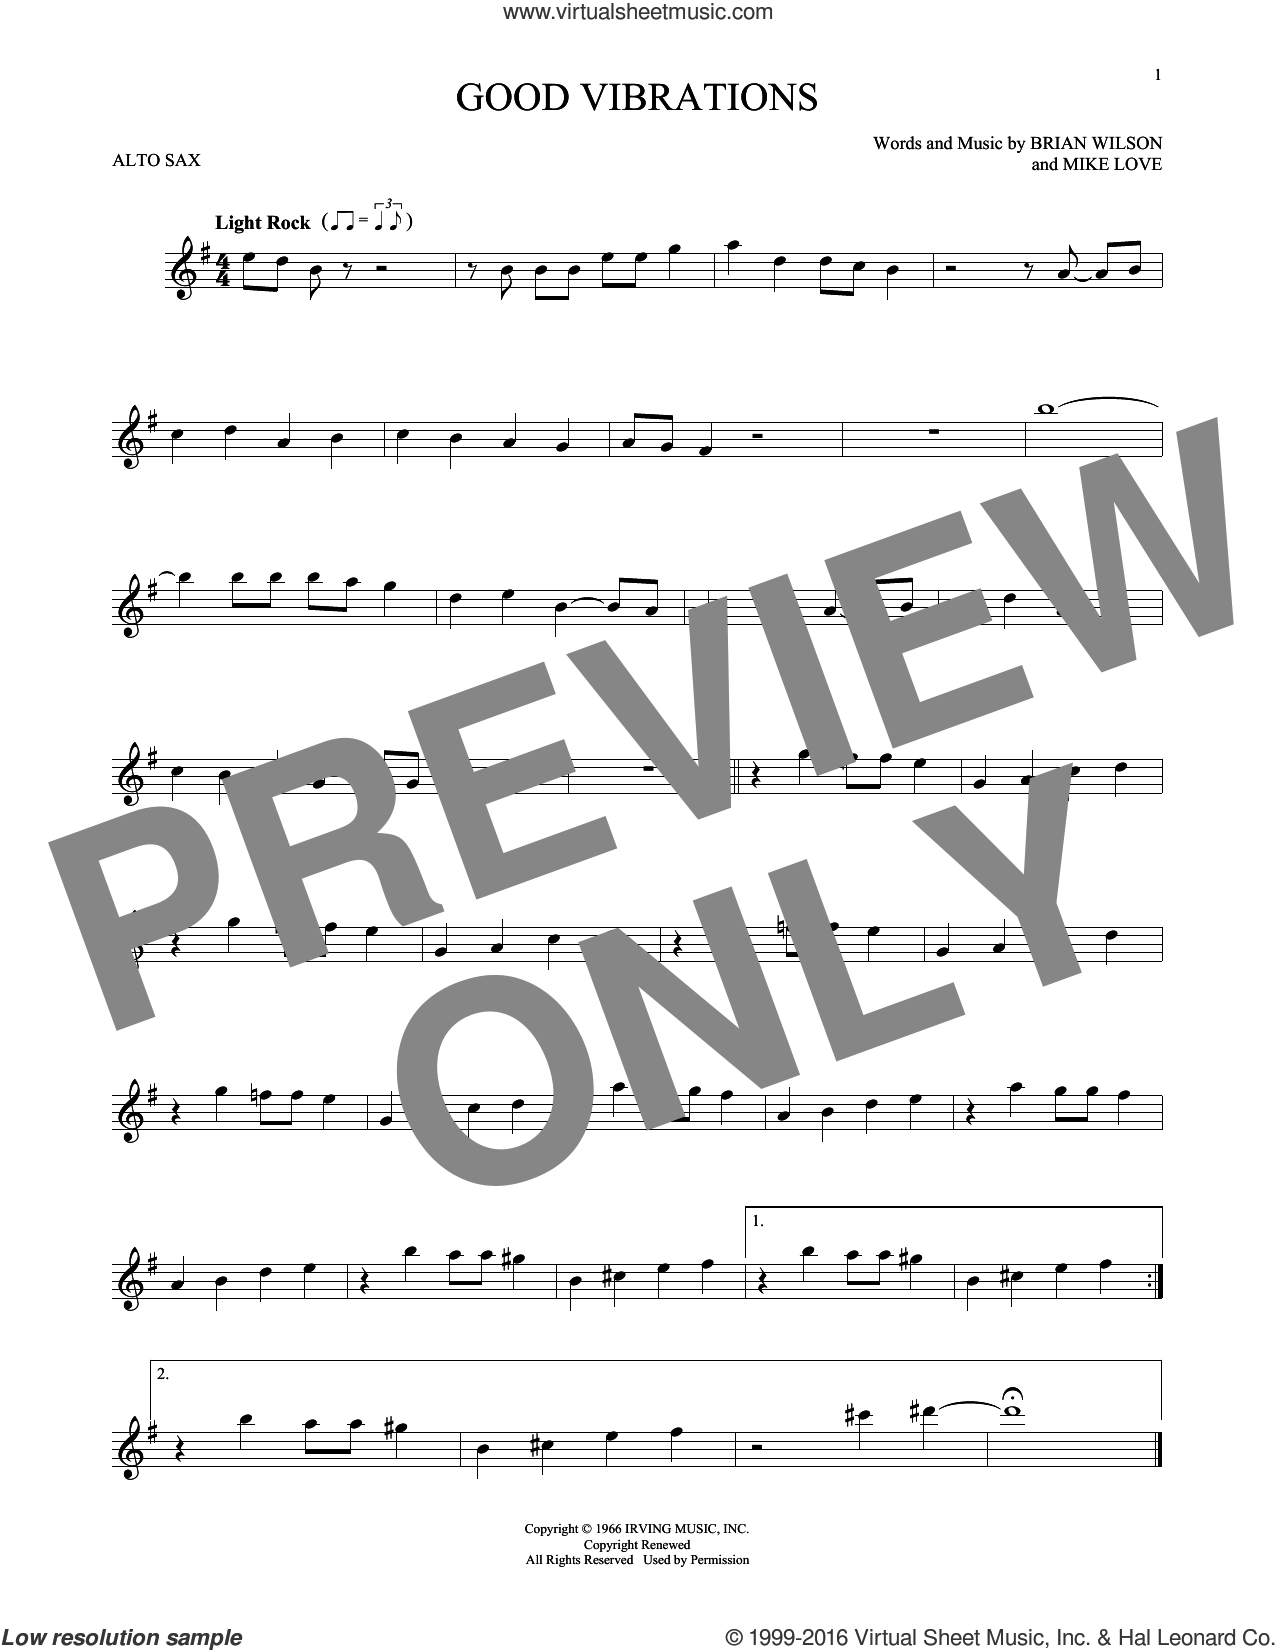 Good Vibrations sheet music for alto saxophone solo by The Beach Boys, Brian Wilson and Mike Love, intermediate skill level